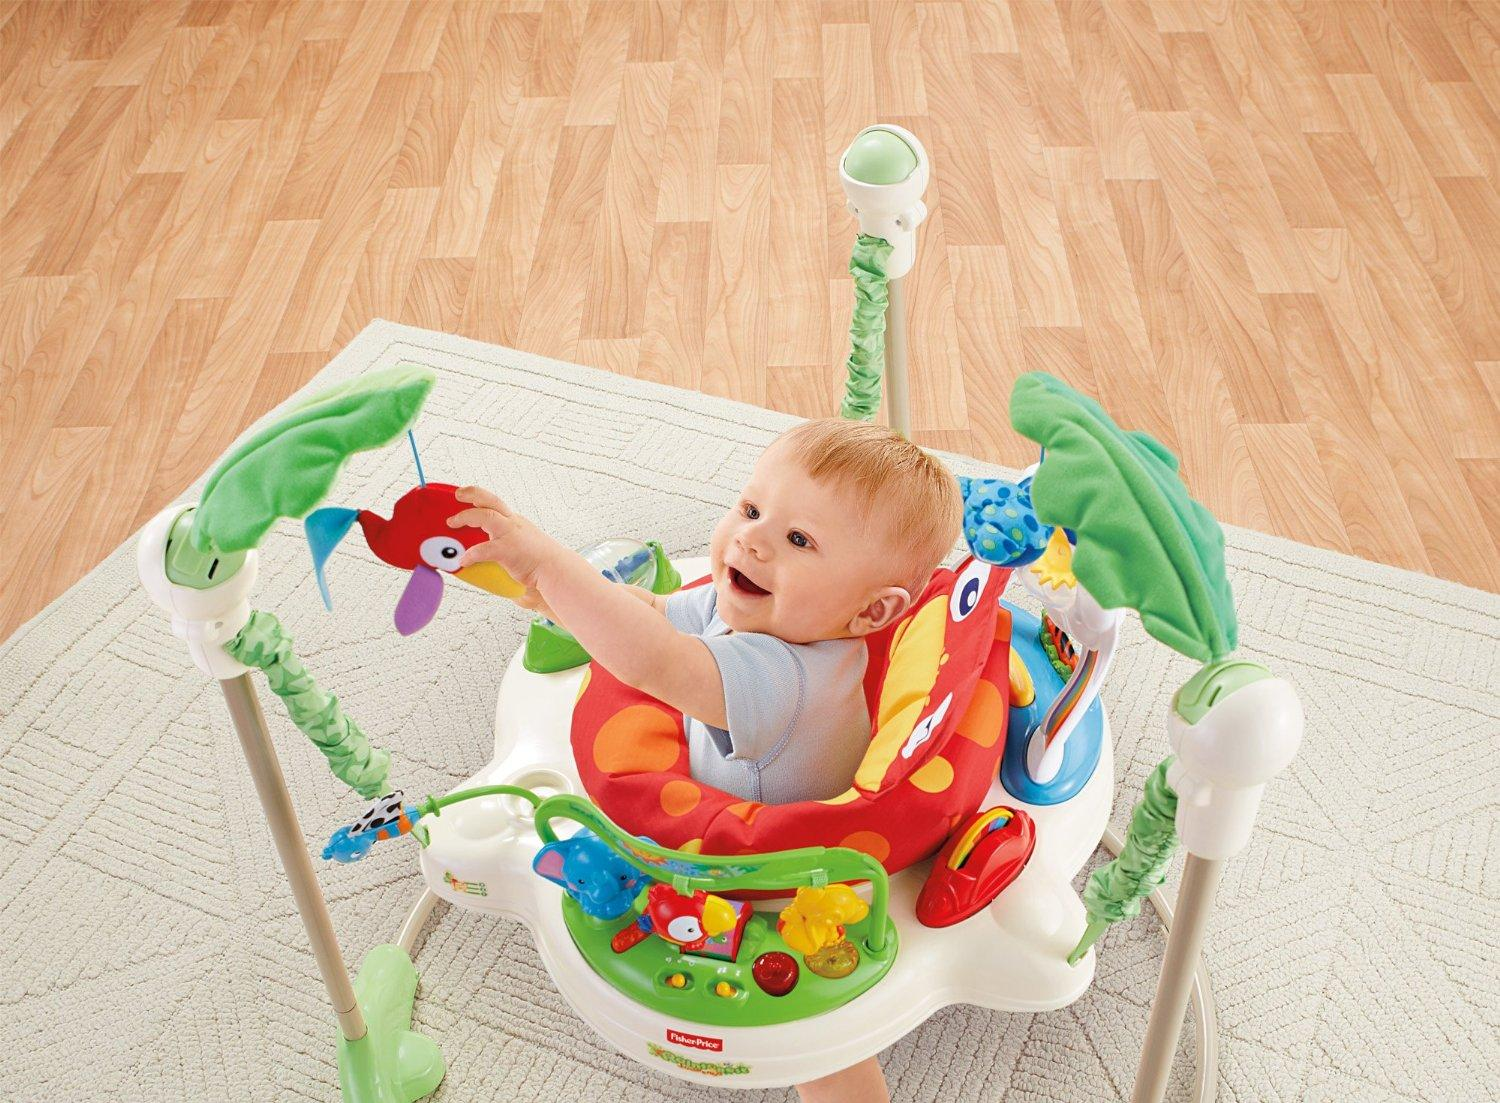 12 Month Olds Toys For Bouncing : Amazon fisher price rainforest jumperoo infant